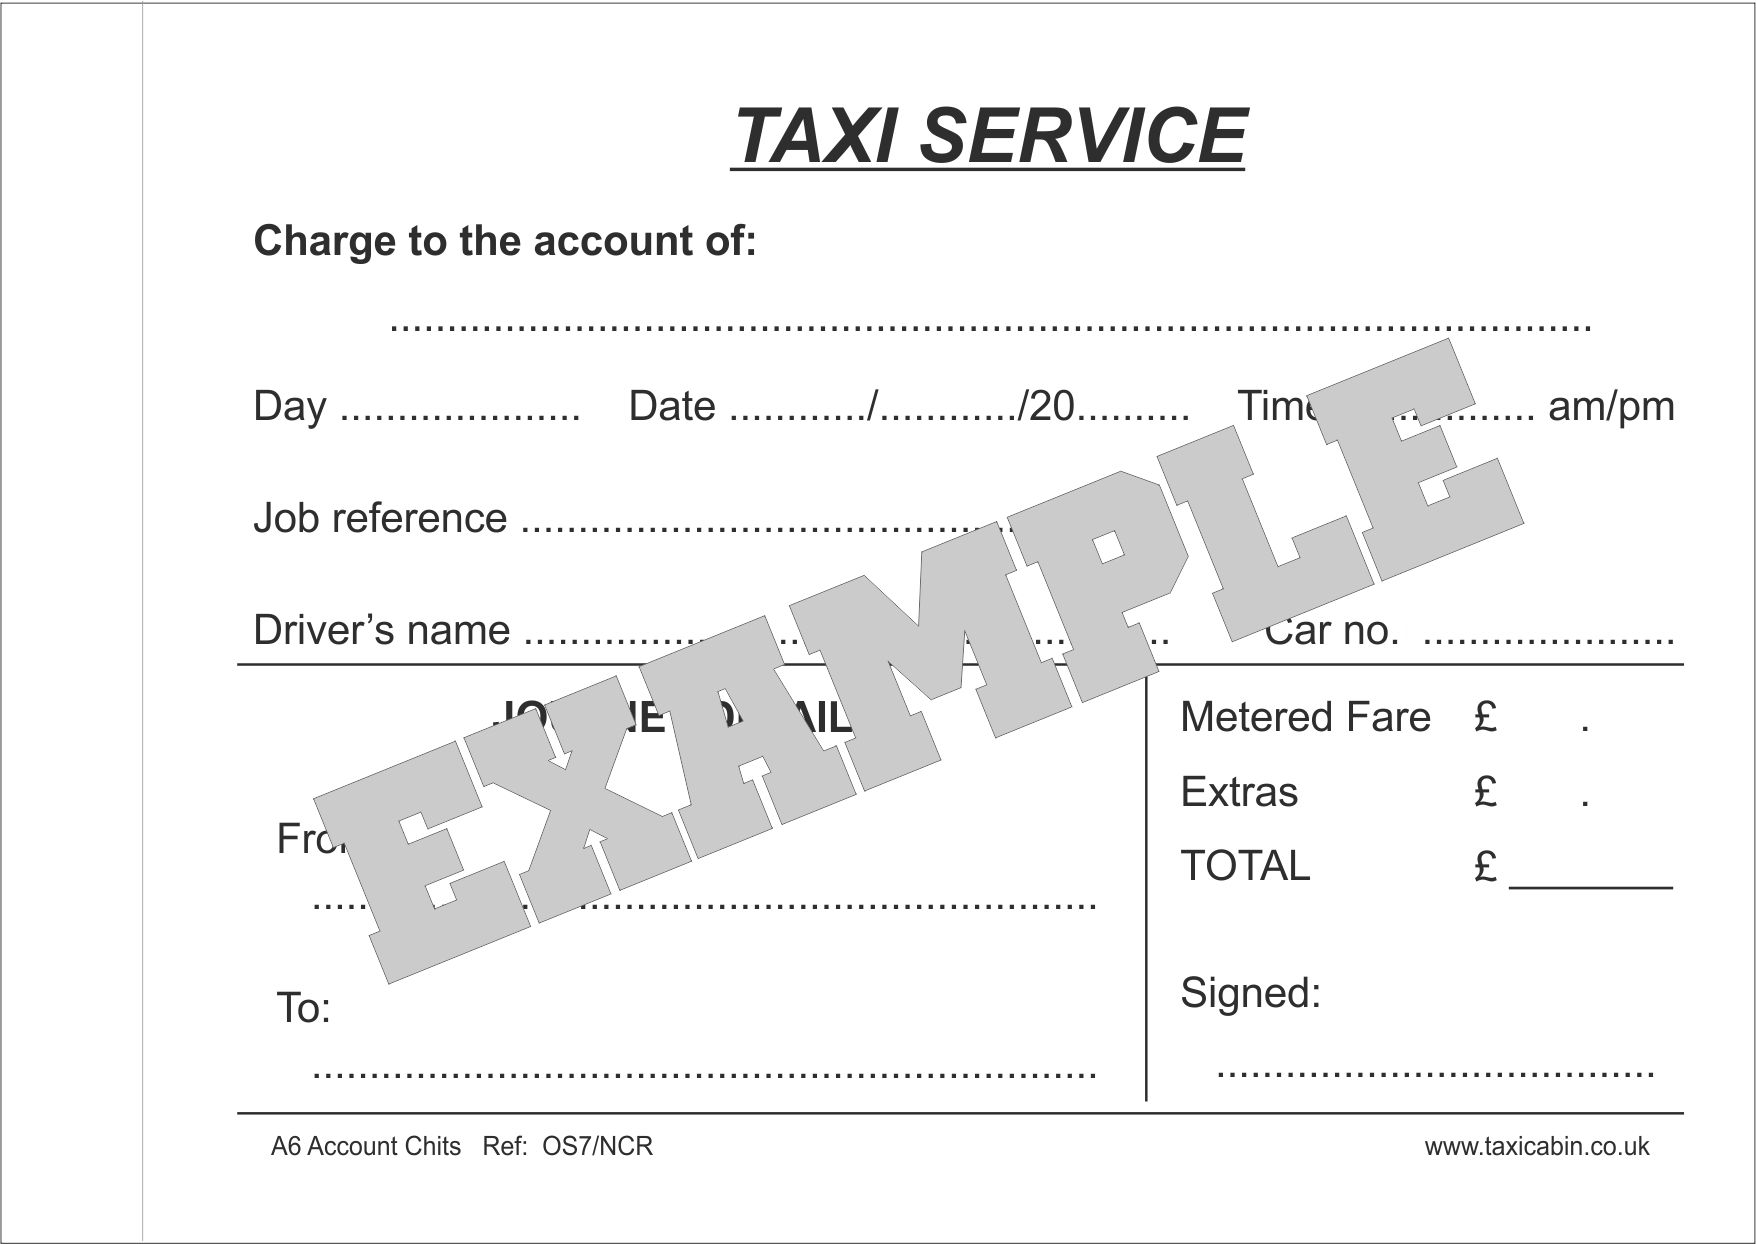 A6 carbonless 2part Customer Account Chits - Ref.OS7/NCR